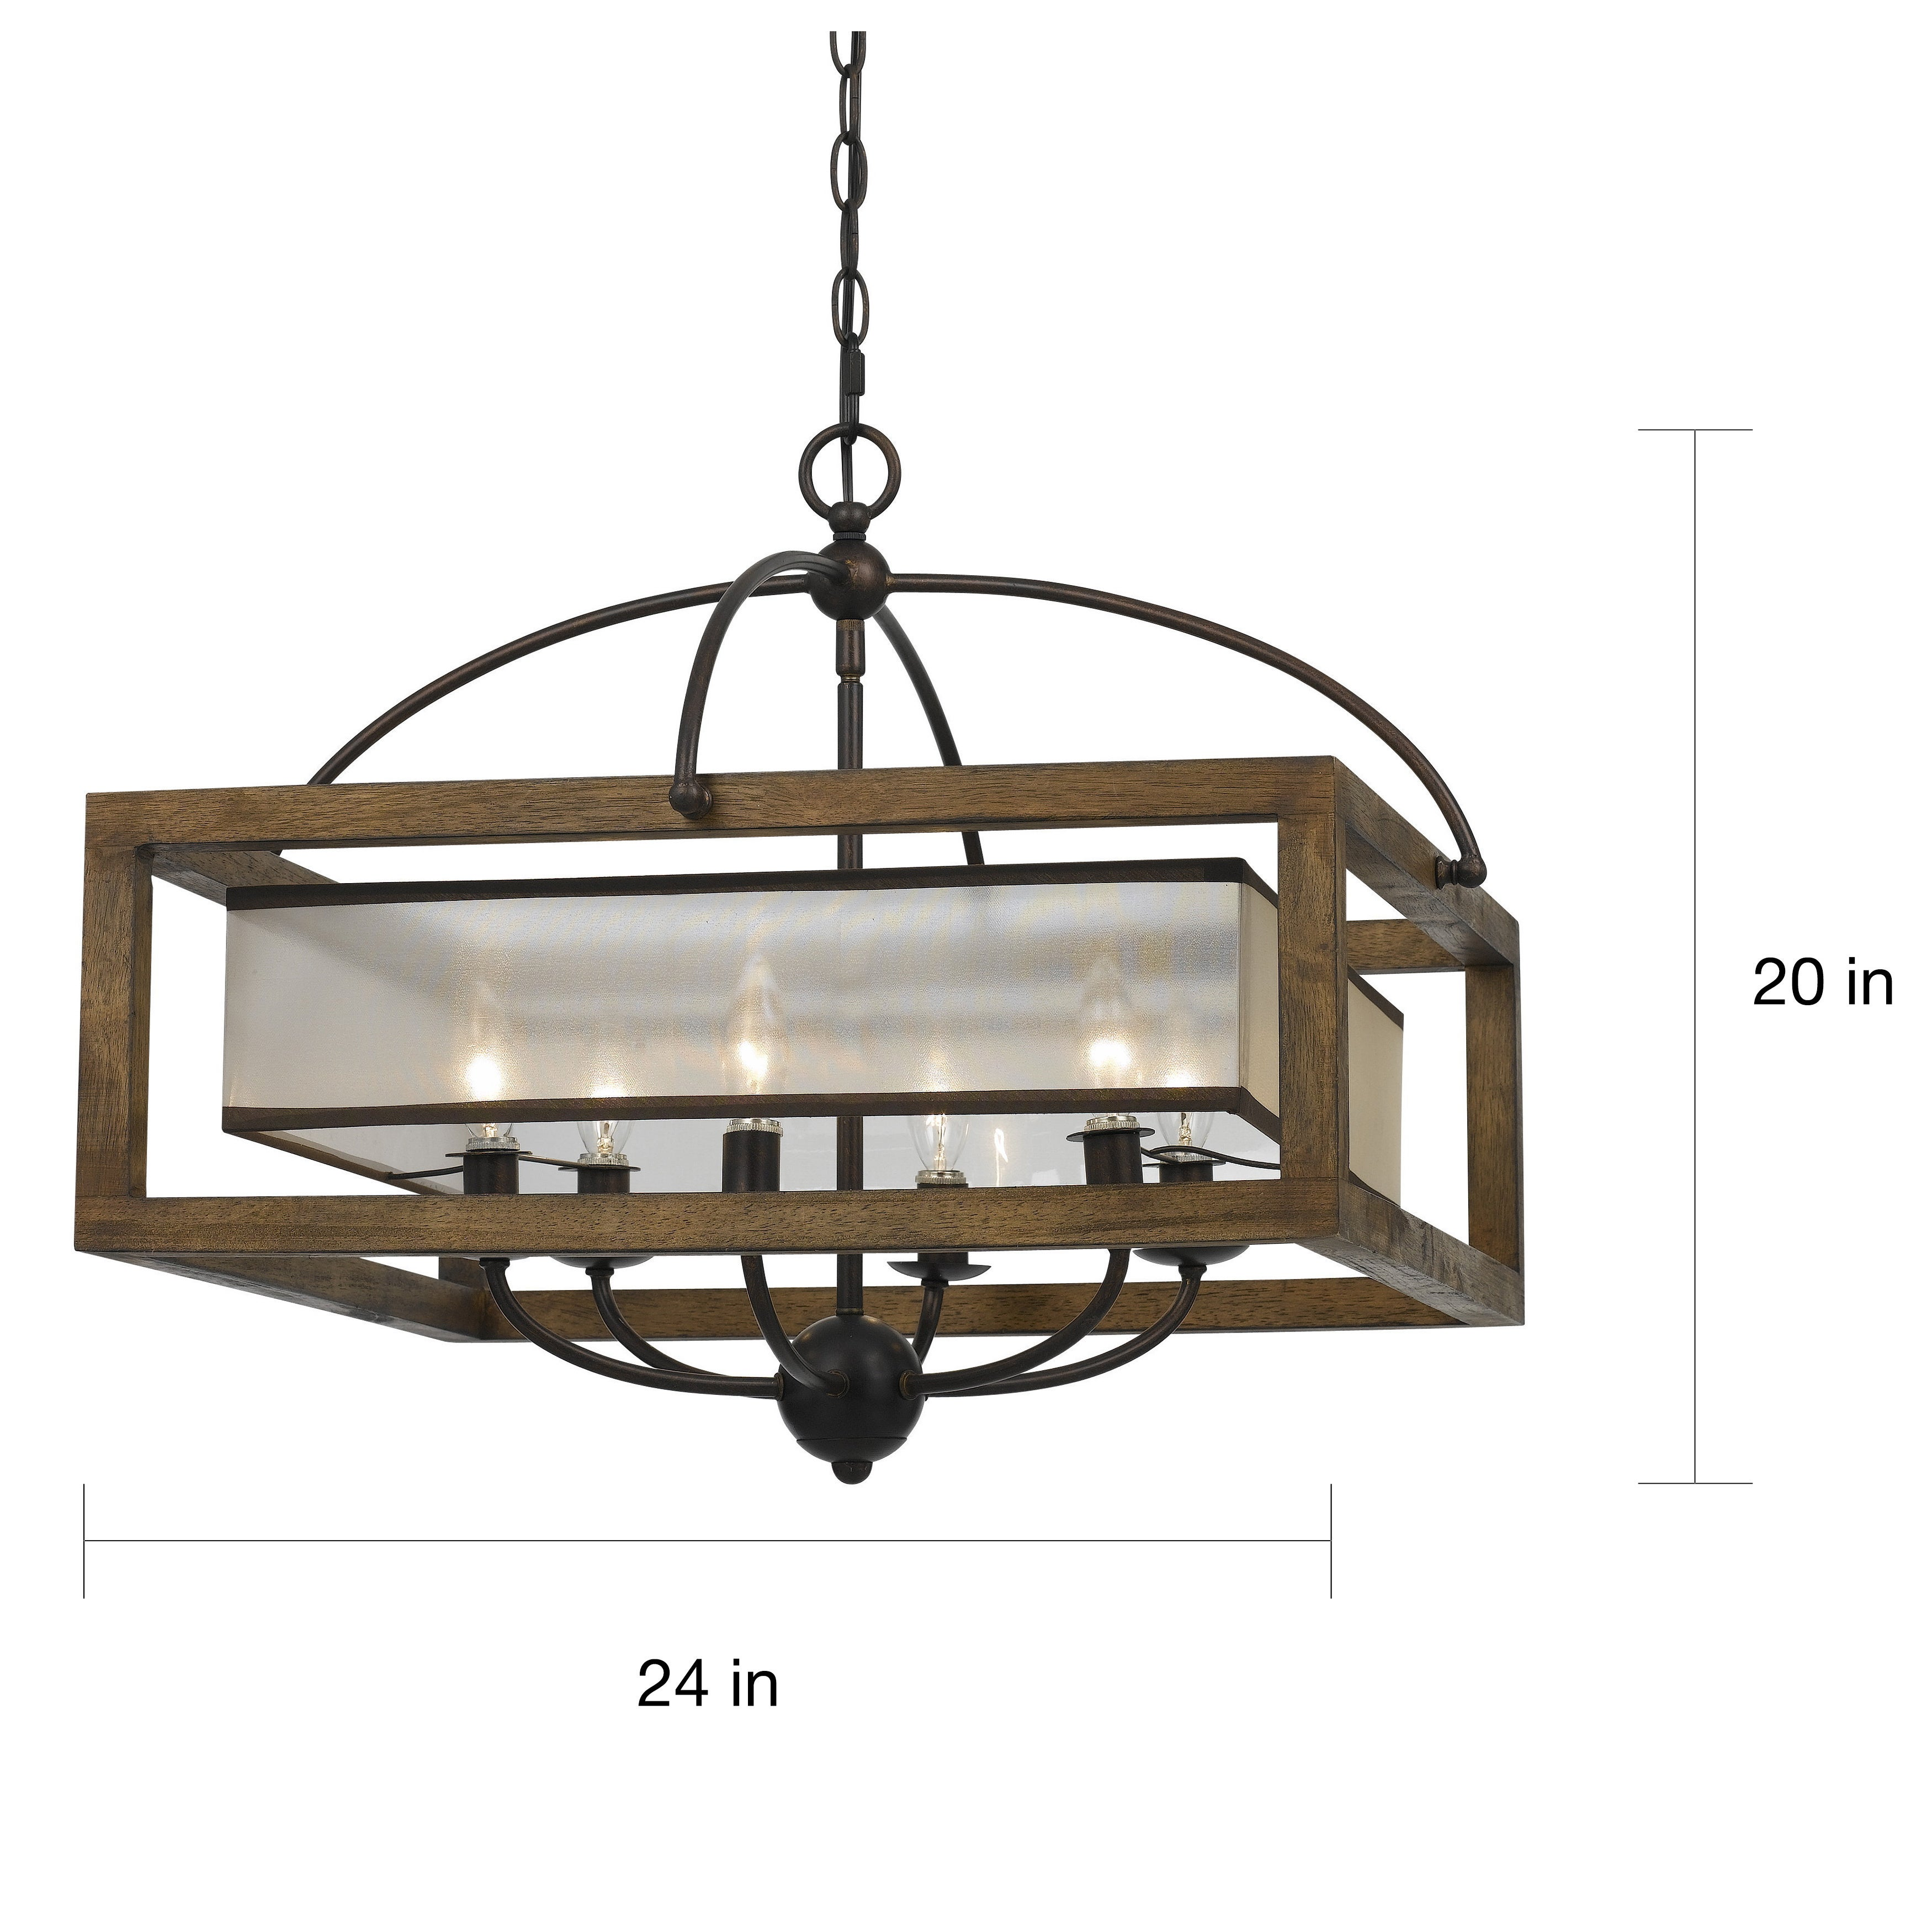 Shop bronze finish 6 light square 60 watt chandelier free shipping today overstock com 13742158